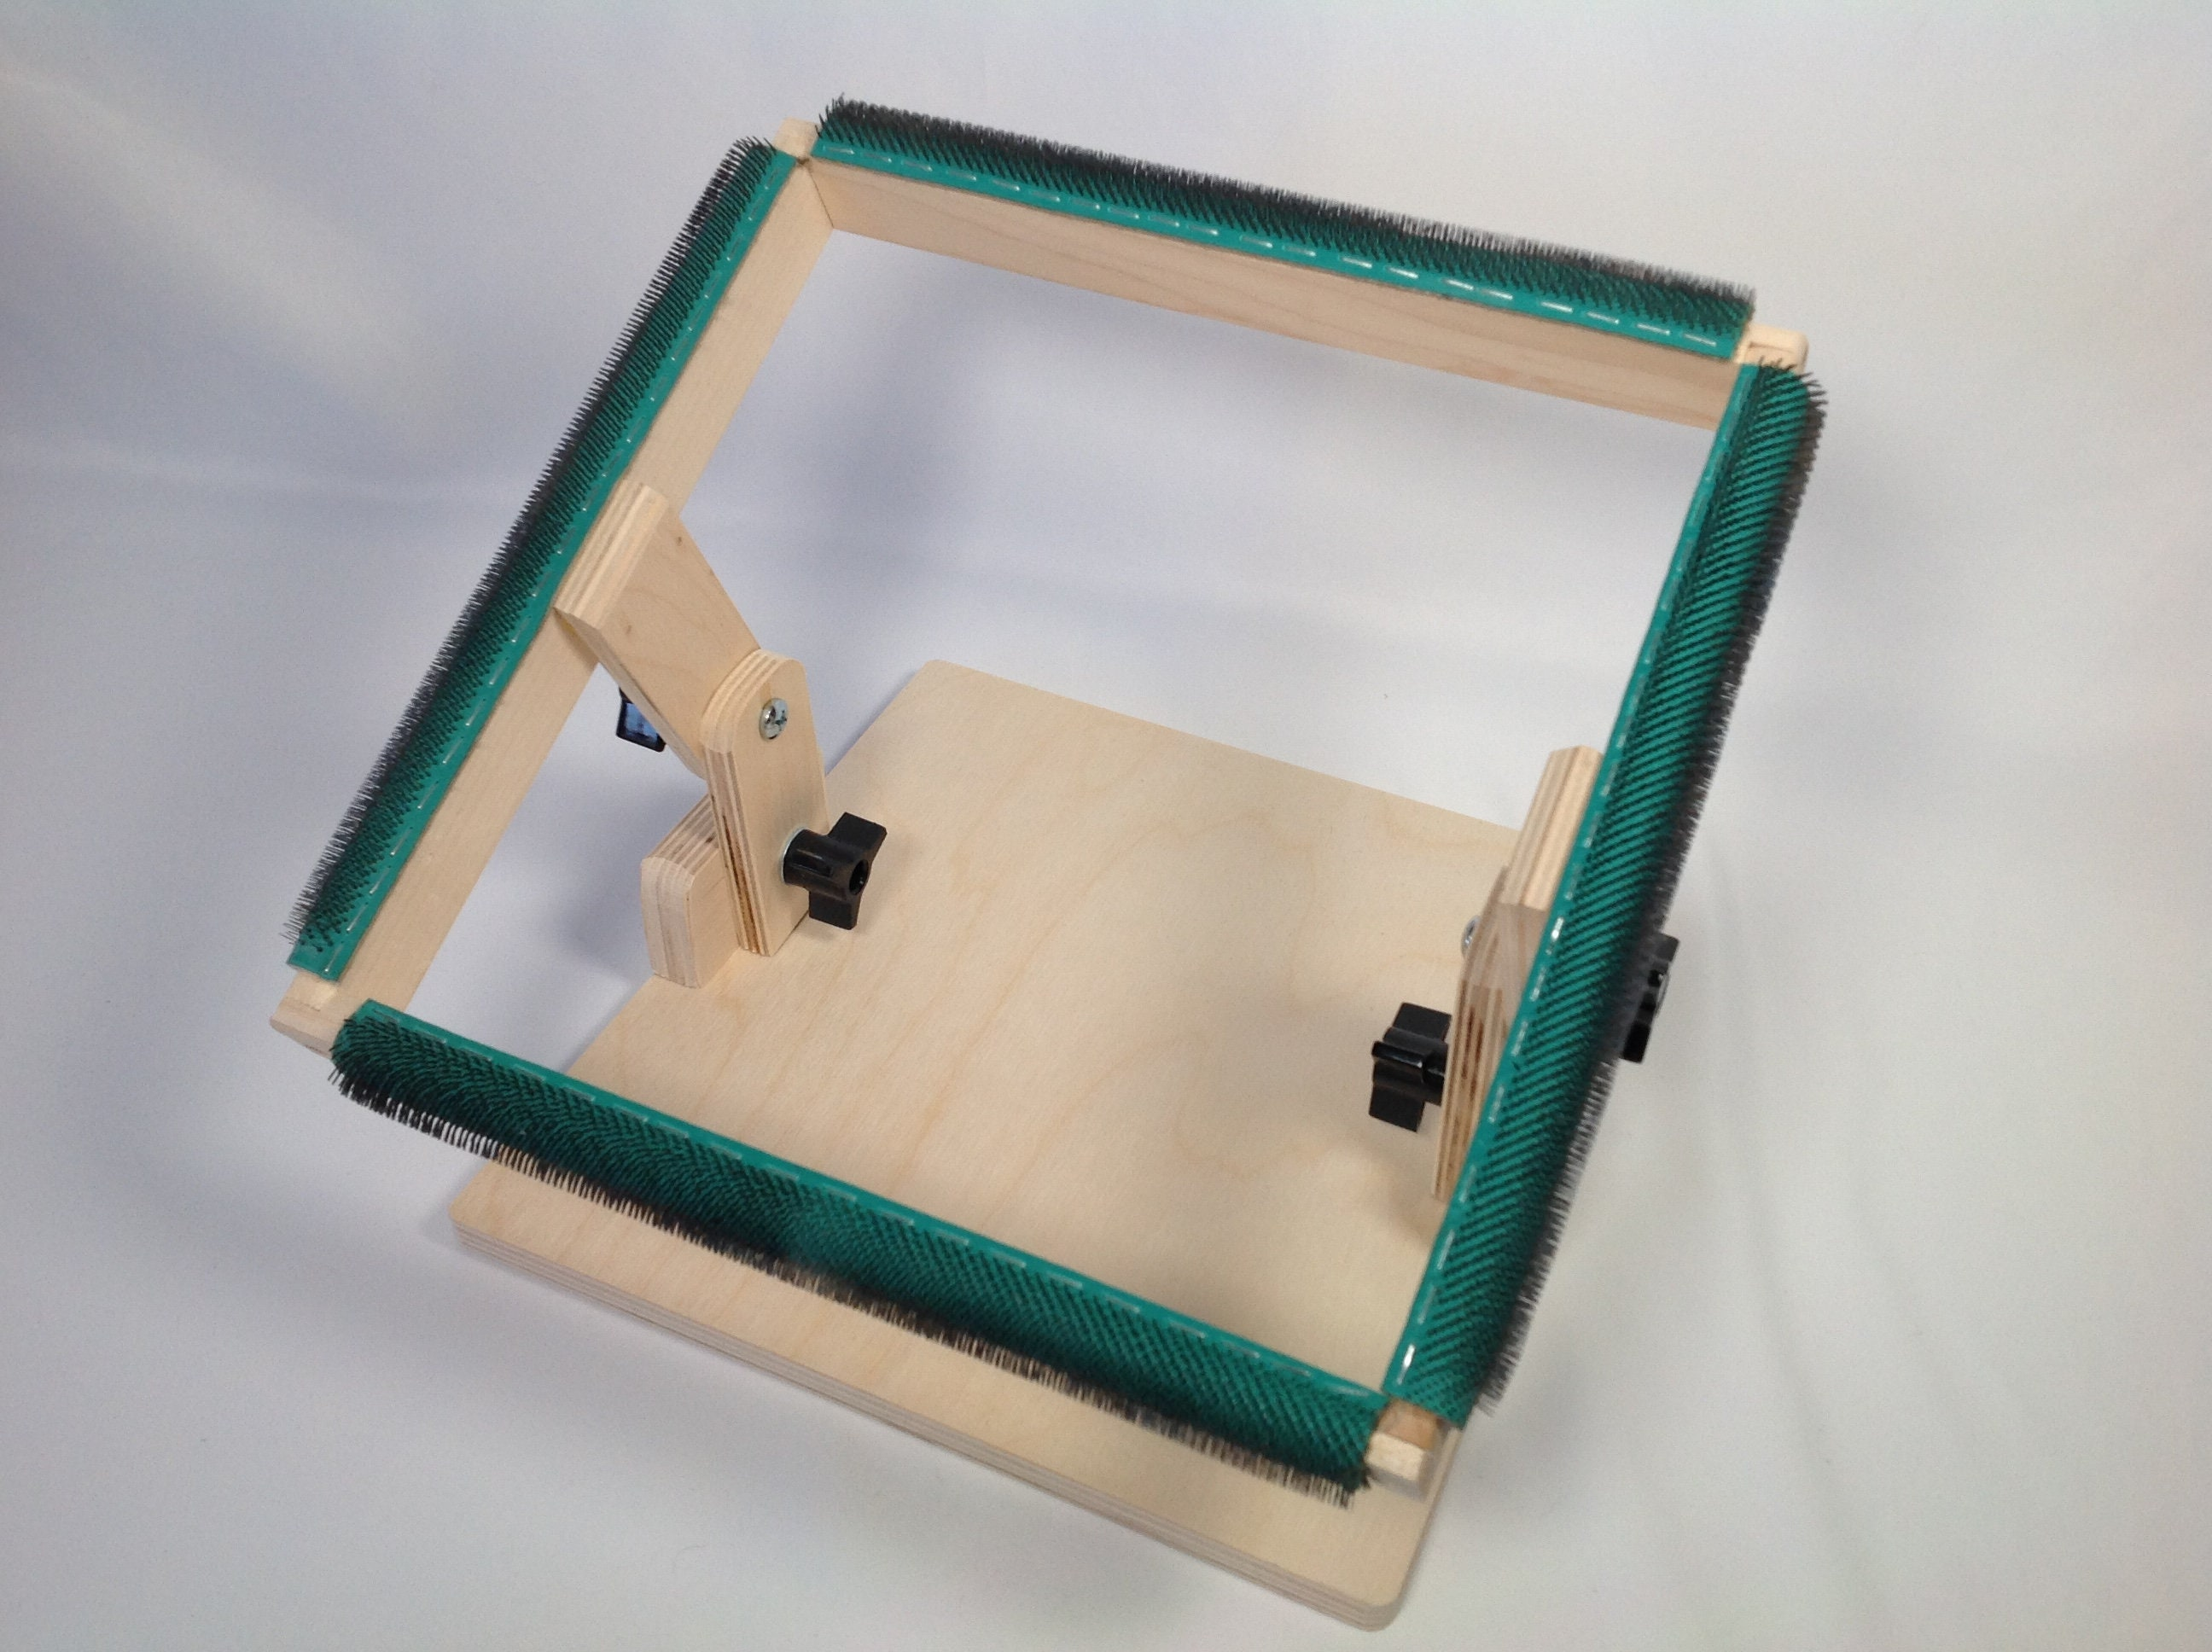 Rug Hooking Frame 10 X 10 With Gripper Strips For Rug